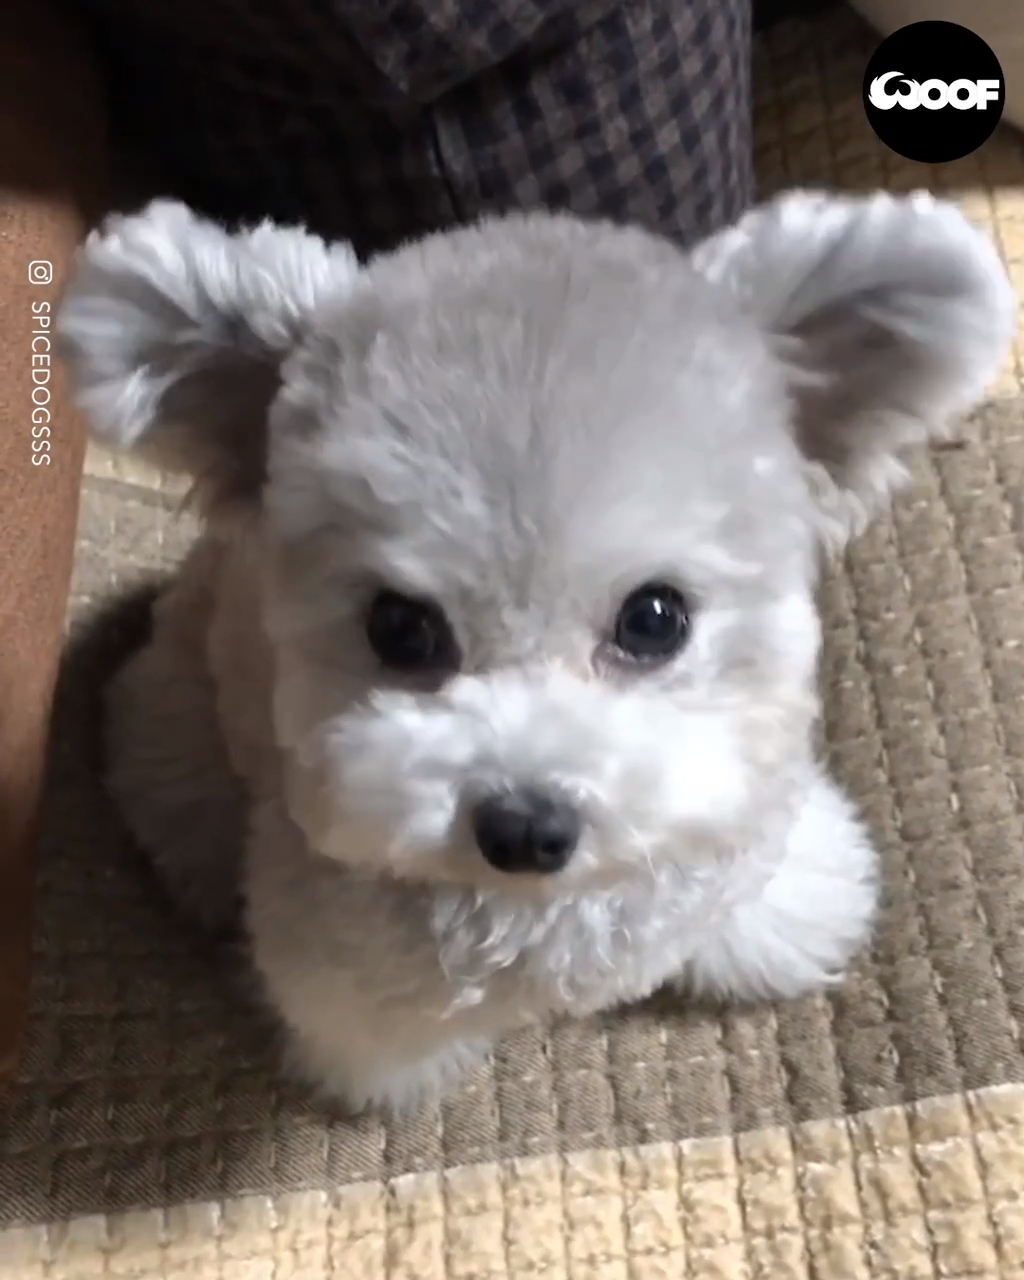 Adorable Mini Silver Poodle Puppy Looks Like A Teddy Bear Adorable Mini Silver Poodle Puppy Looks Like A Teddy Bear